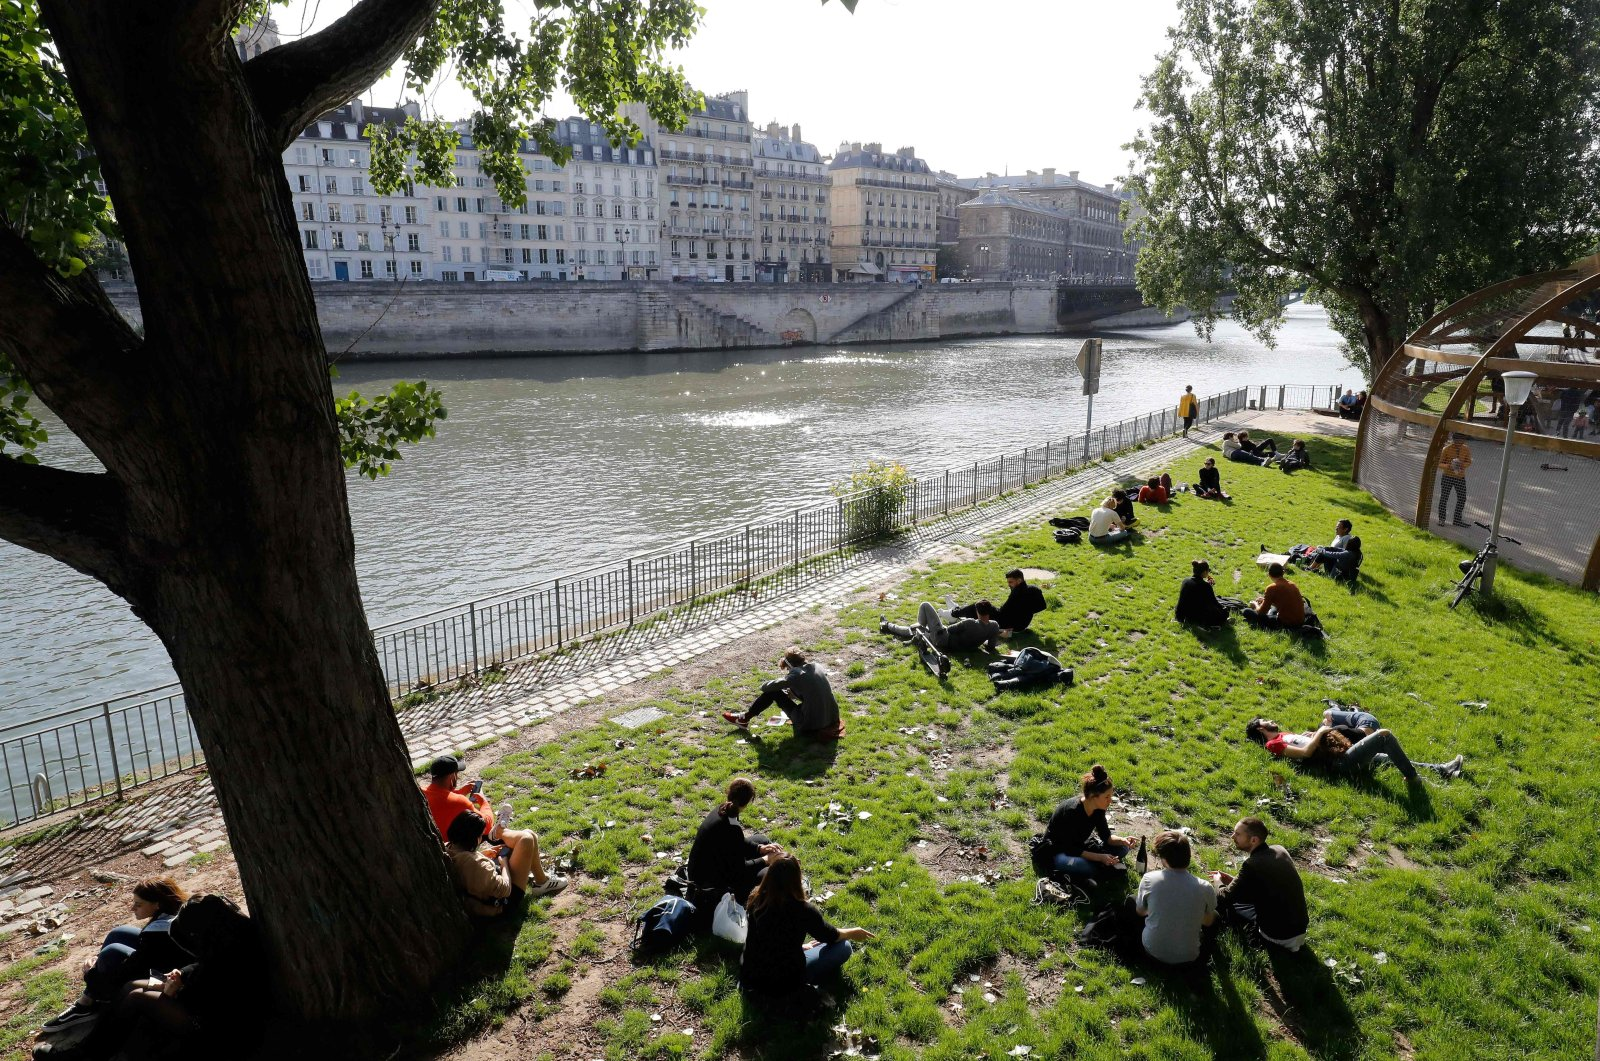 People gather along banks of the Seine river in Paris, on May 11, 2020, on the first day of France's easing of lockdown measures in place for 55 days to curb the spread of the COVID-19 pandemic, caused by the novel coronavirus. (AFP Photo)